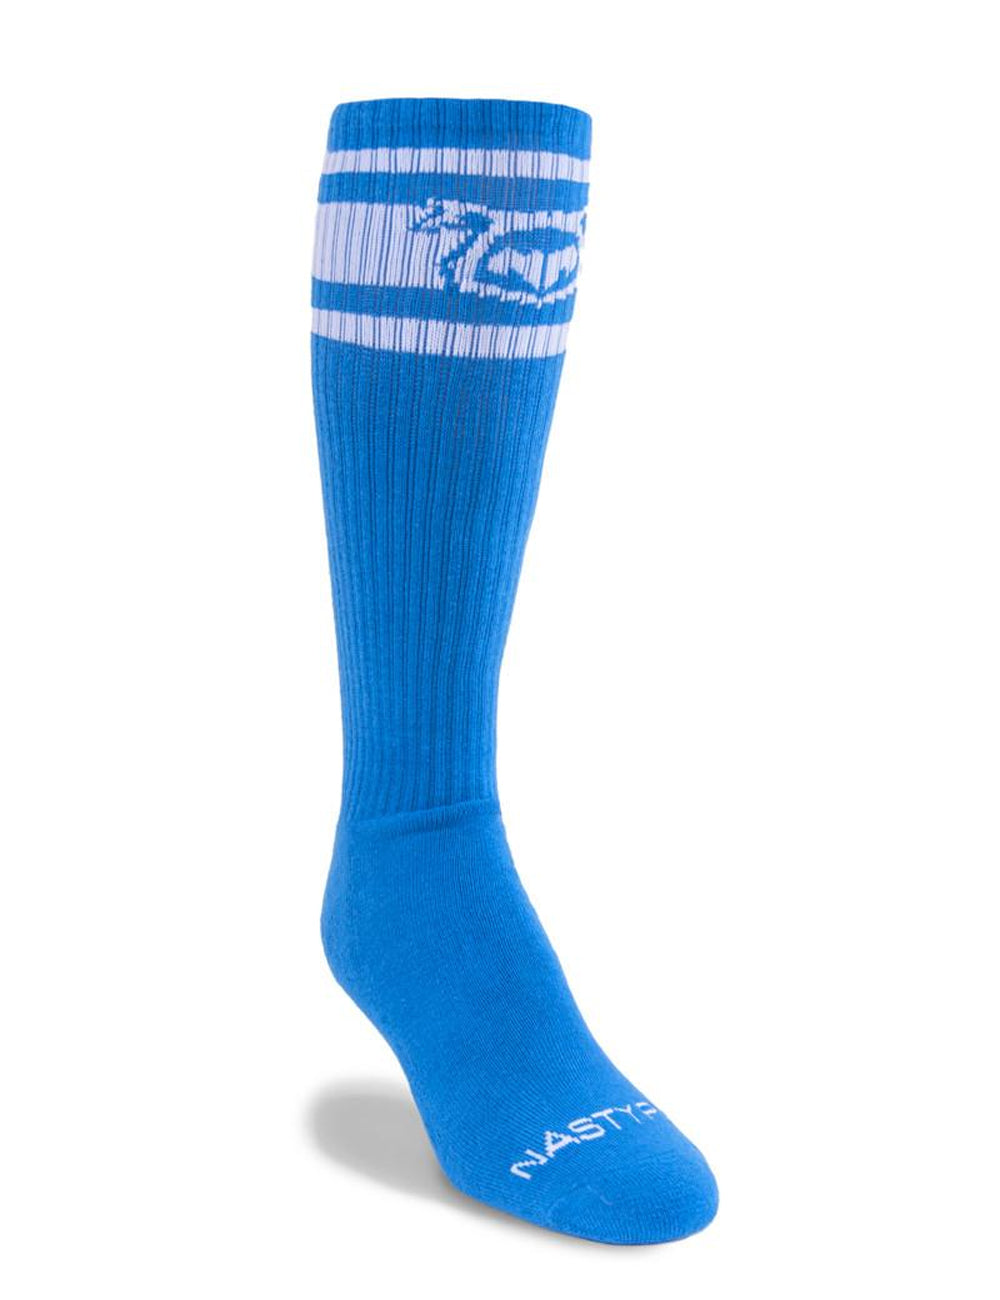 Nasty Pig Hook'd Up Sport Socks